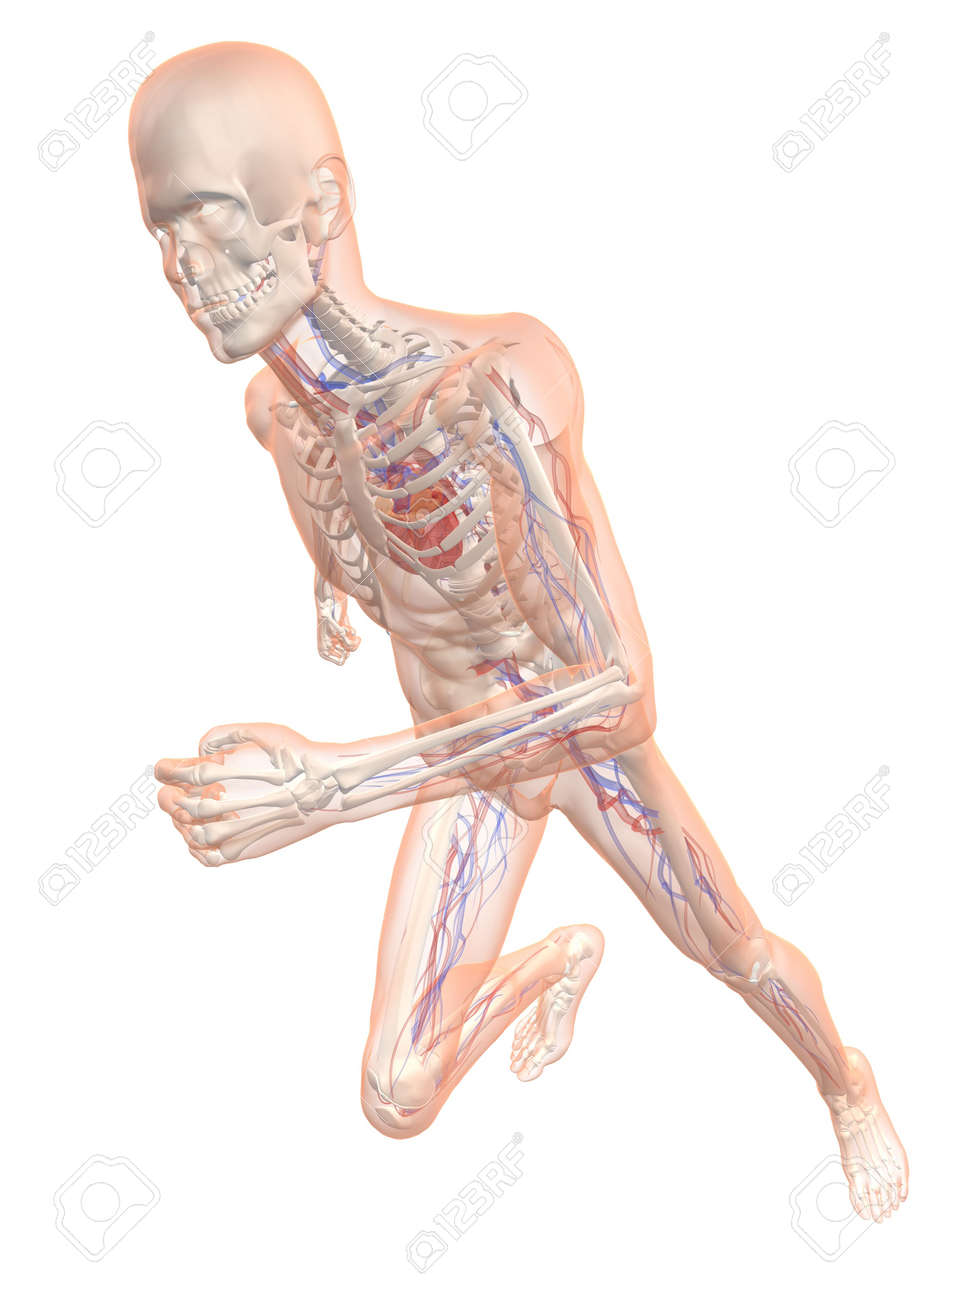 Transparent Running Man - Vascular System Stock Photo, Picture And ...